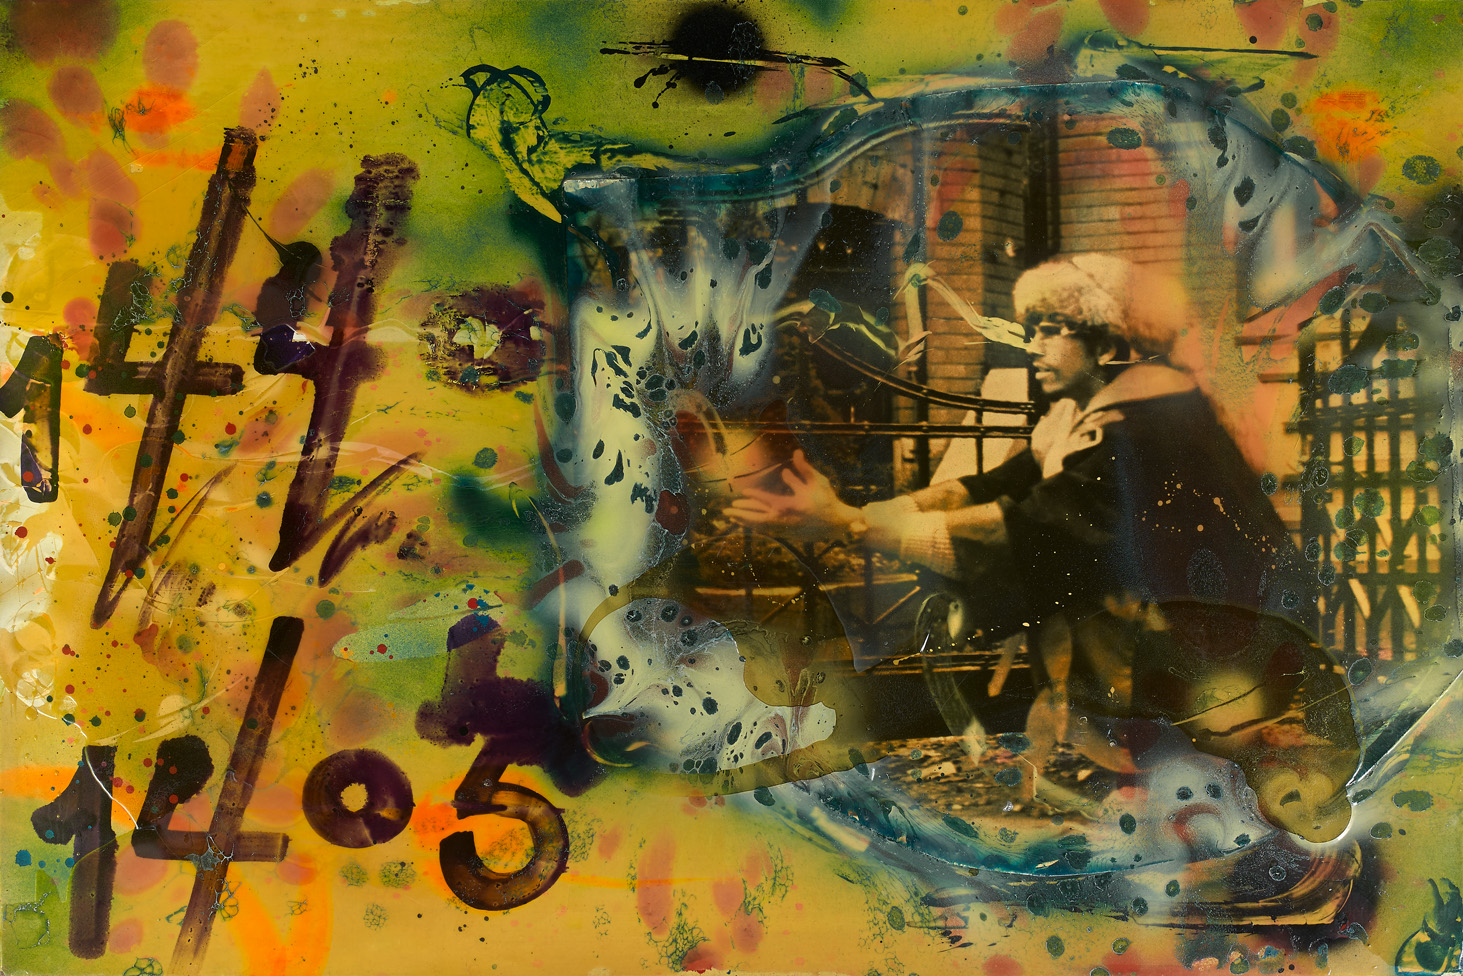 Lot 12 Rammellzee How to make a bomb 1985 © Artcurial